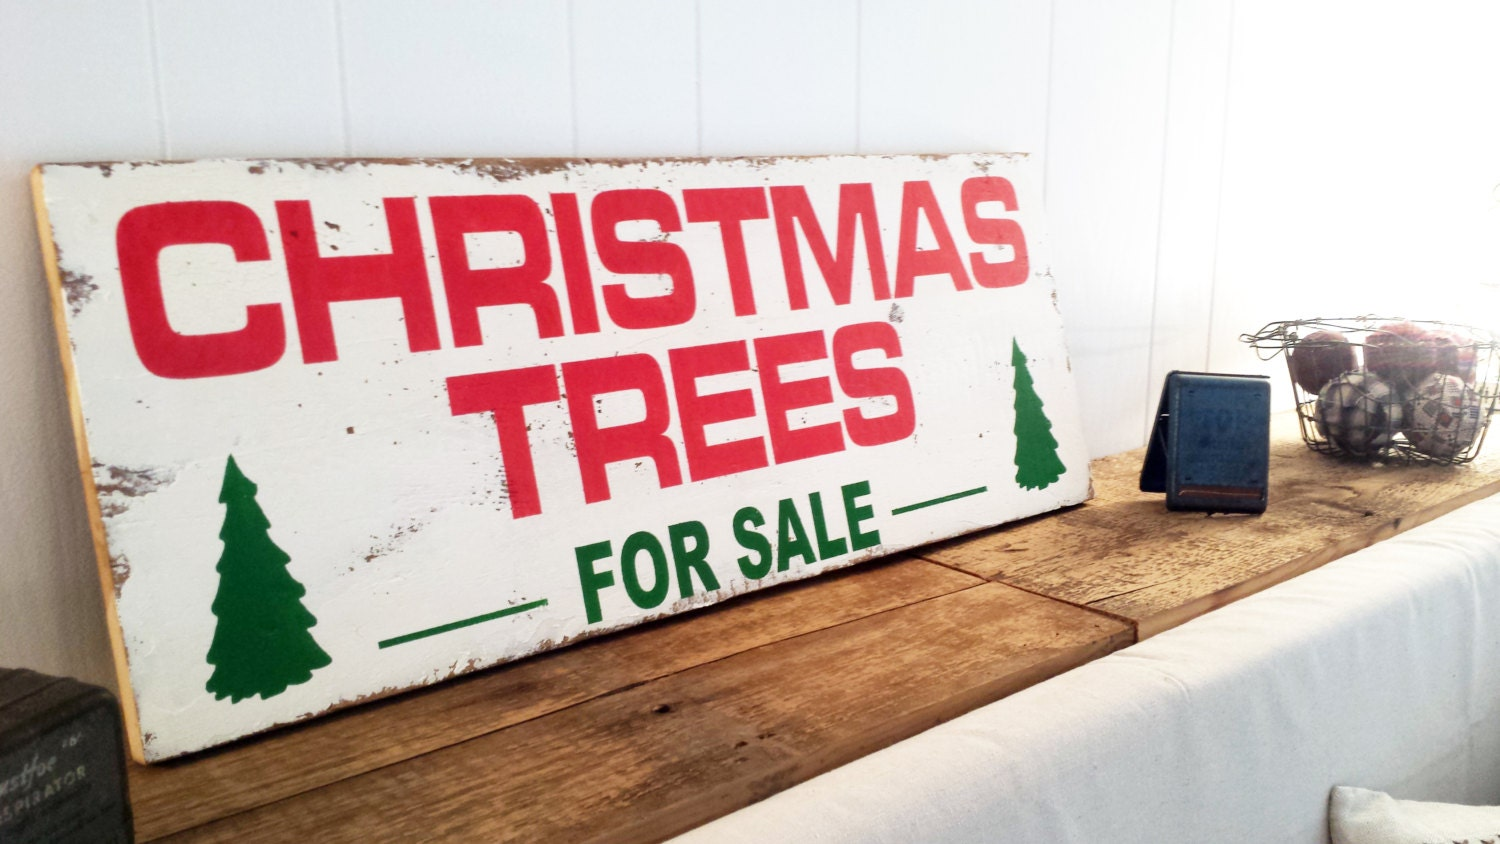 18.5 x 48 Christmas Trees For Sale Wall Decor